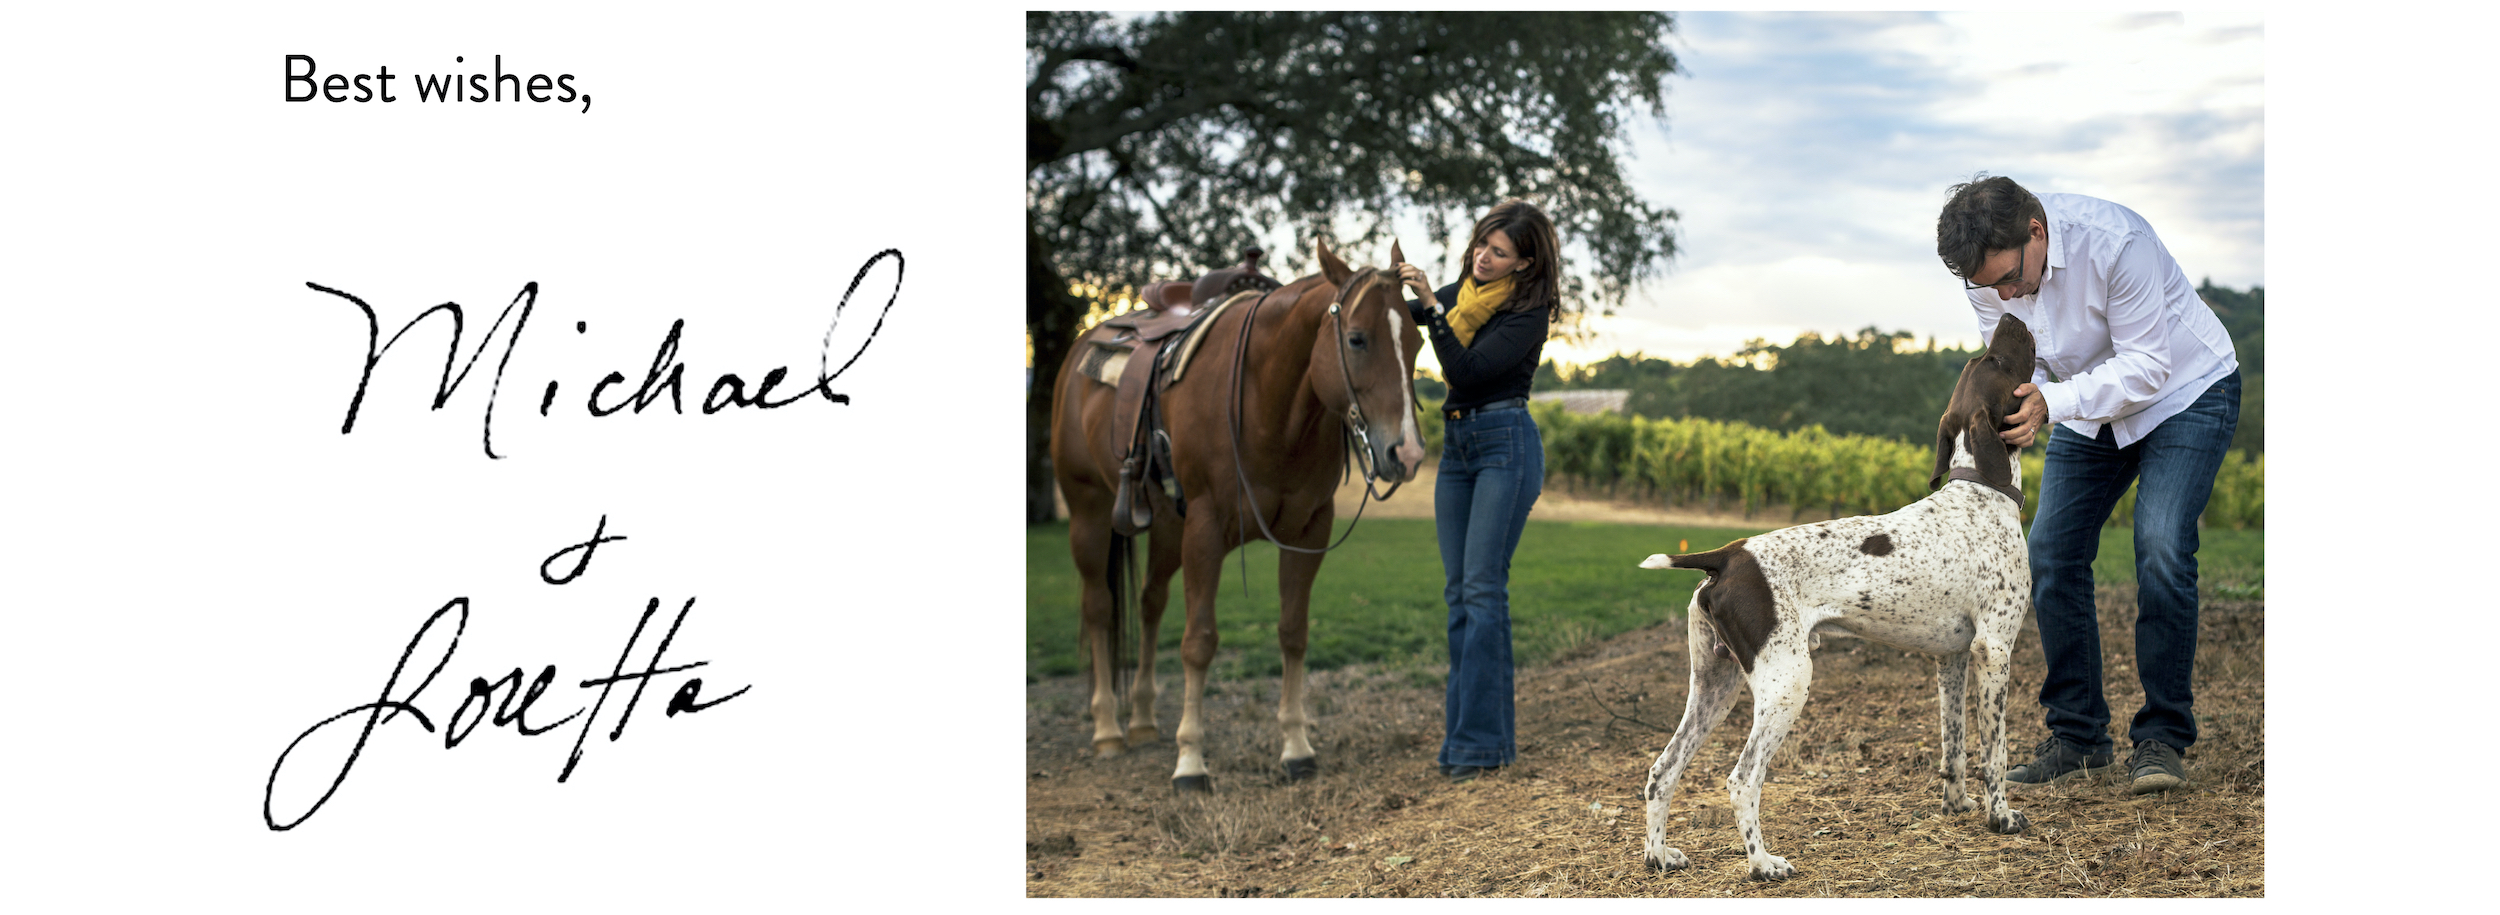 signature, with L & M goofing off with dog & horse